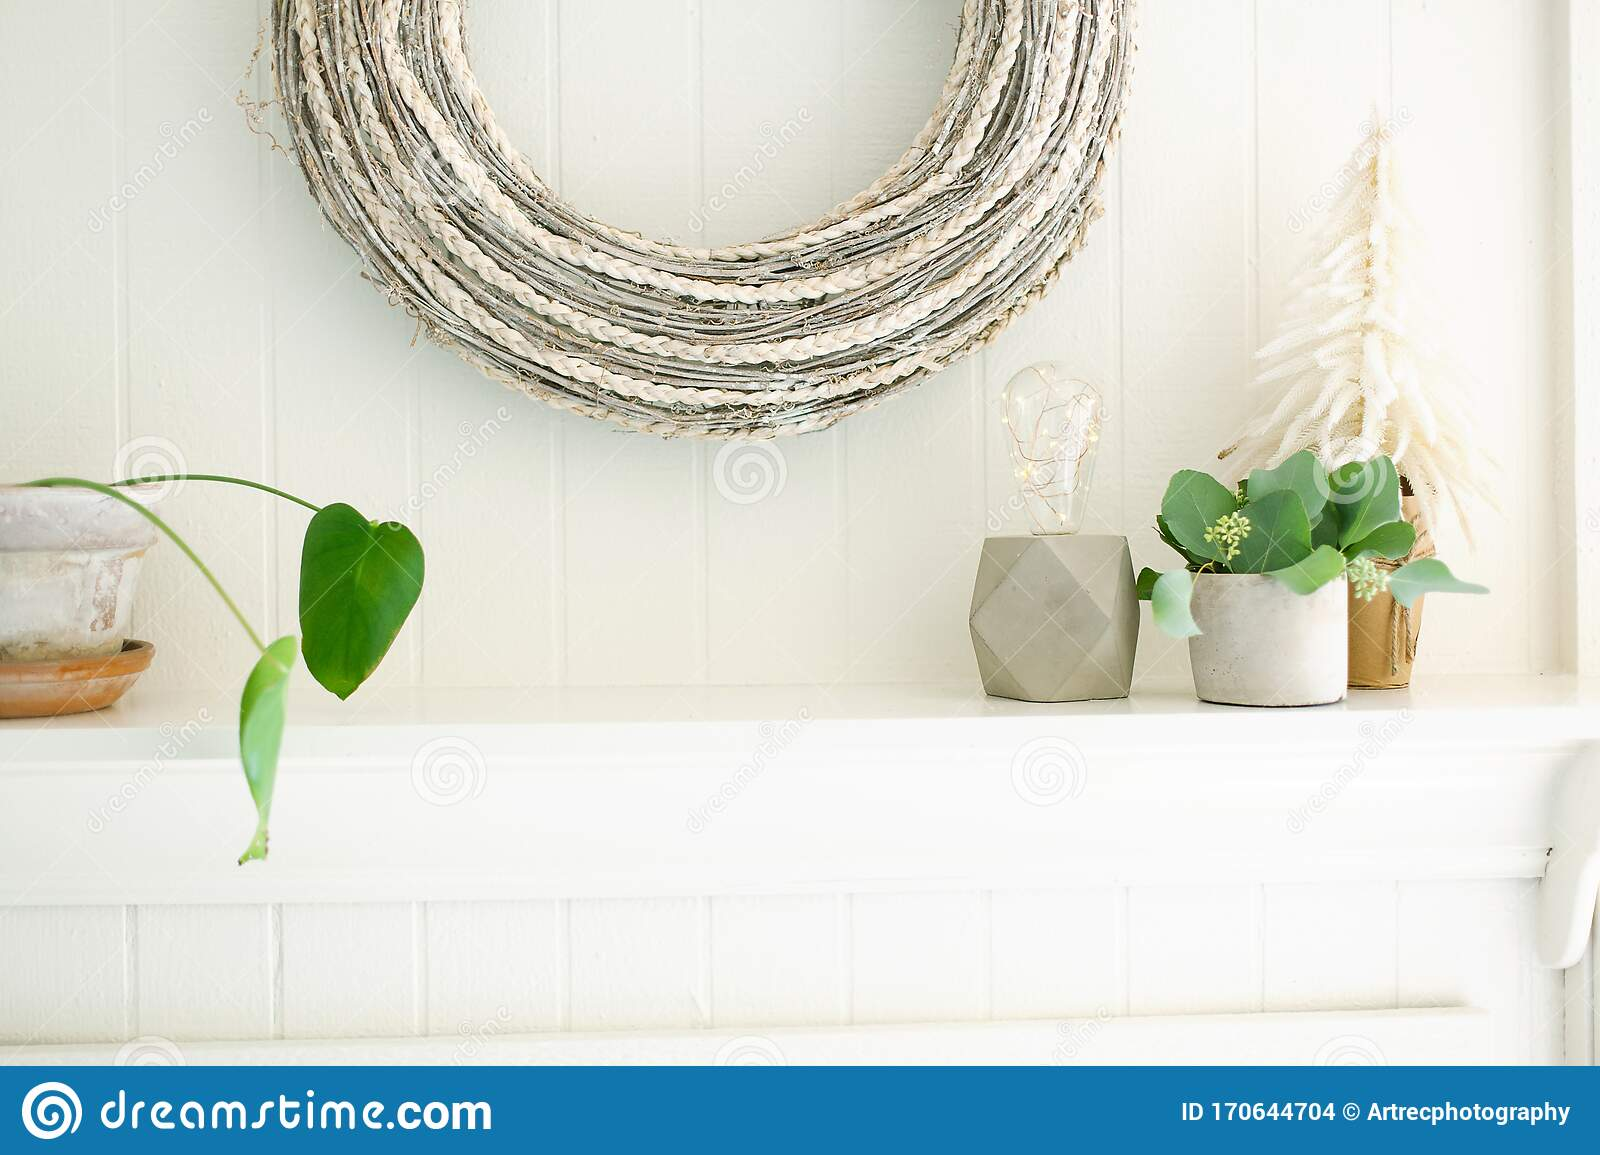 Christmas White Wreath With Plants, String Light Lamp And ...